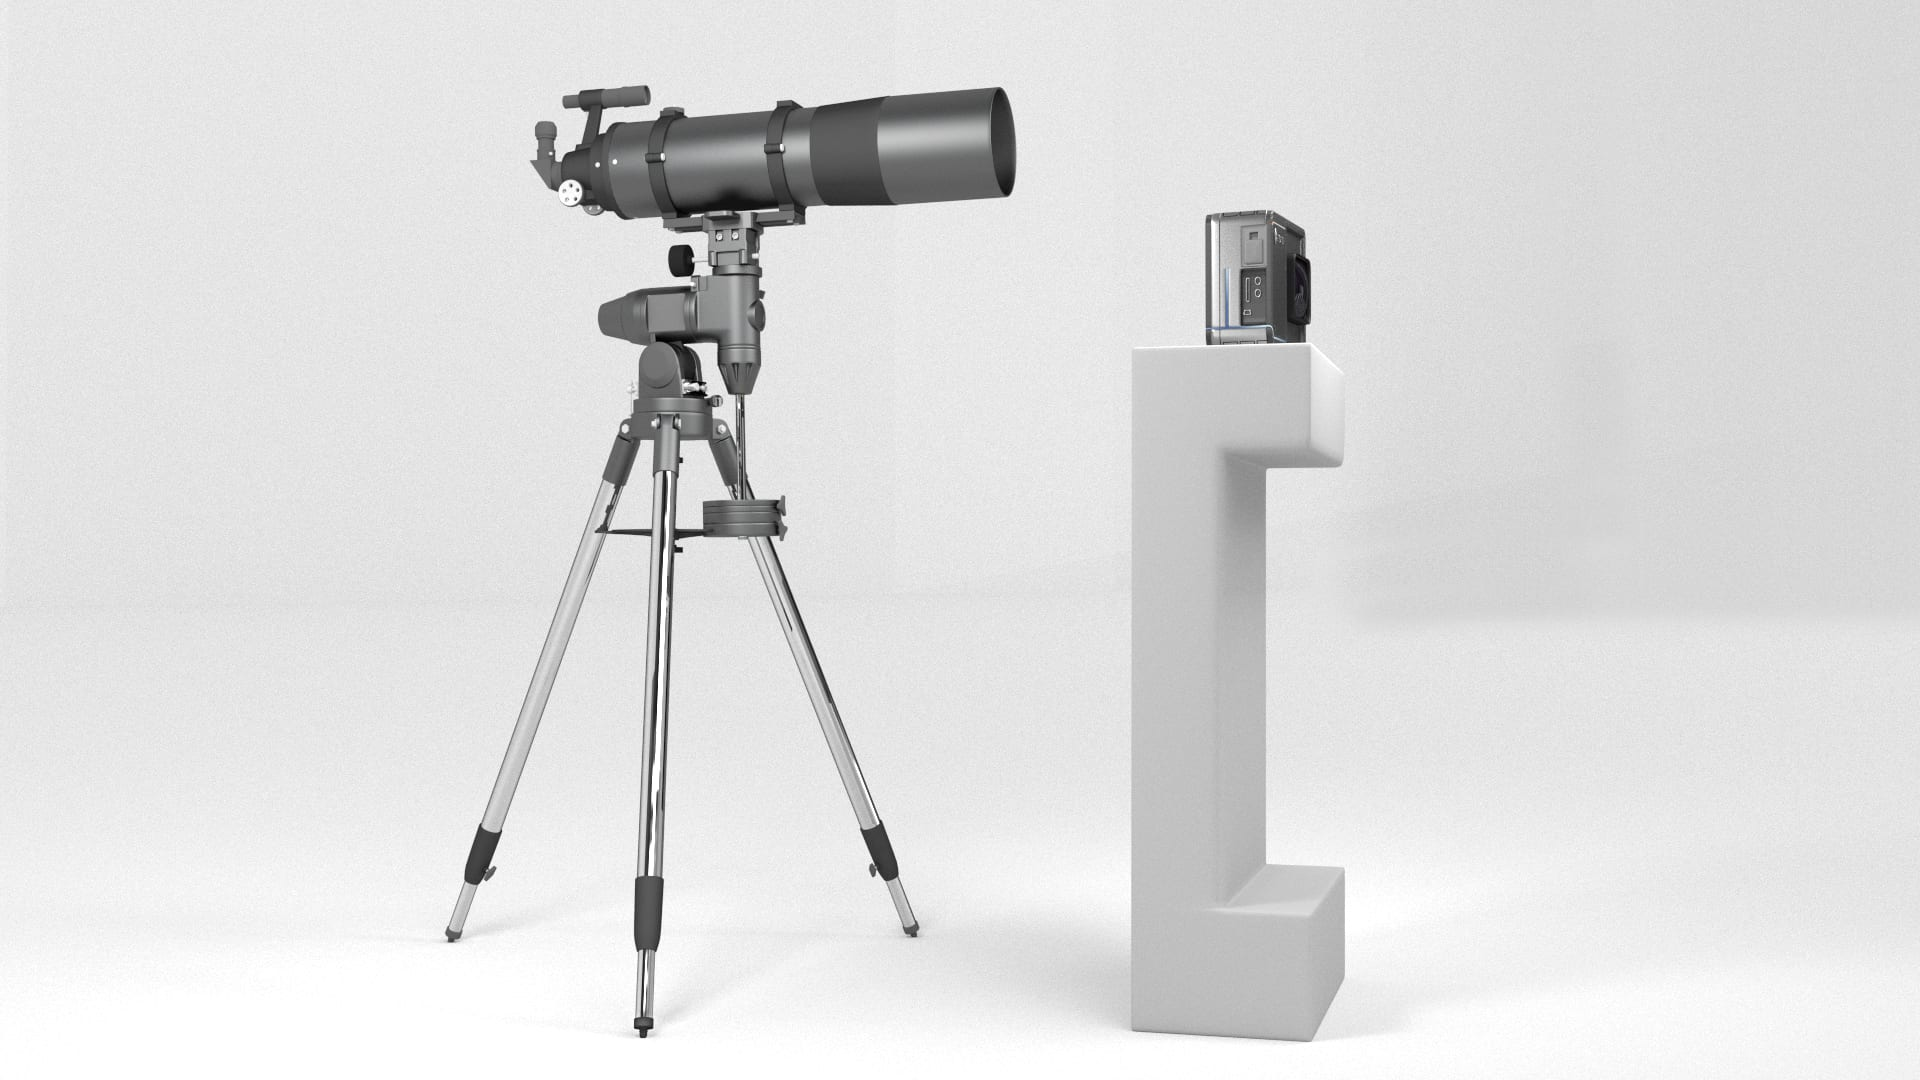 Traditional Telescope vs. Blade Optics Telescope. Design Rendering. Actual prototype and applications may vary.